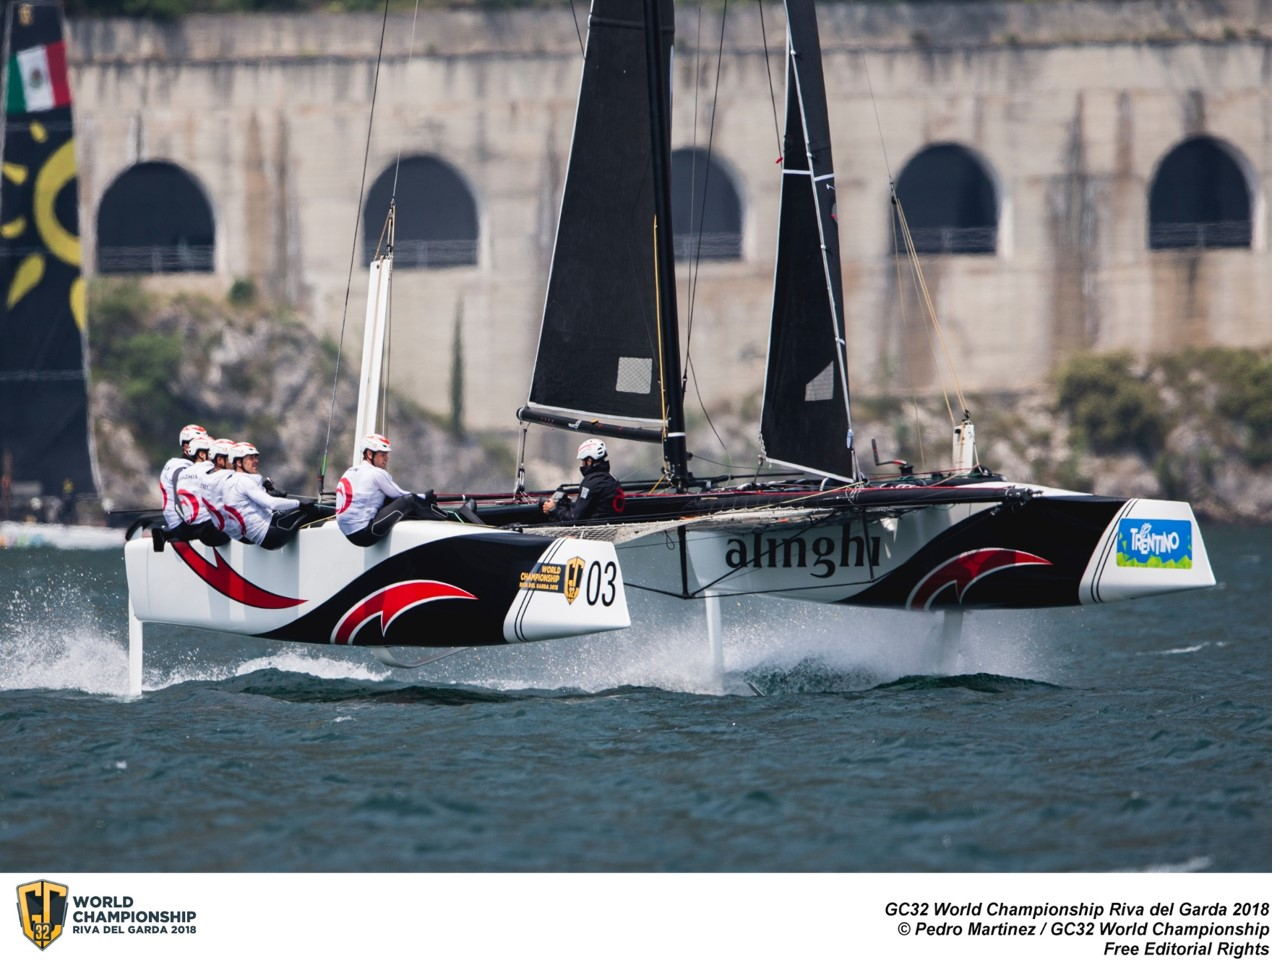 Ernesto Bertarelli and Alinghi won the Owner Driver class at the GC32 World Championship. Photo ©: Pedro Martinez / GC32 World Championship